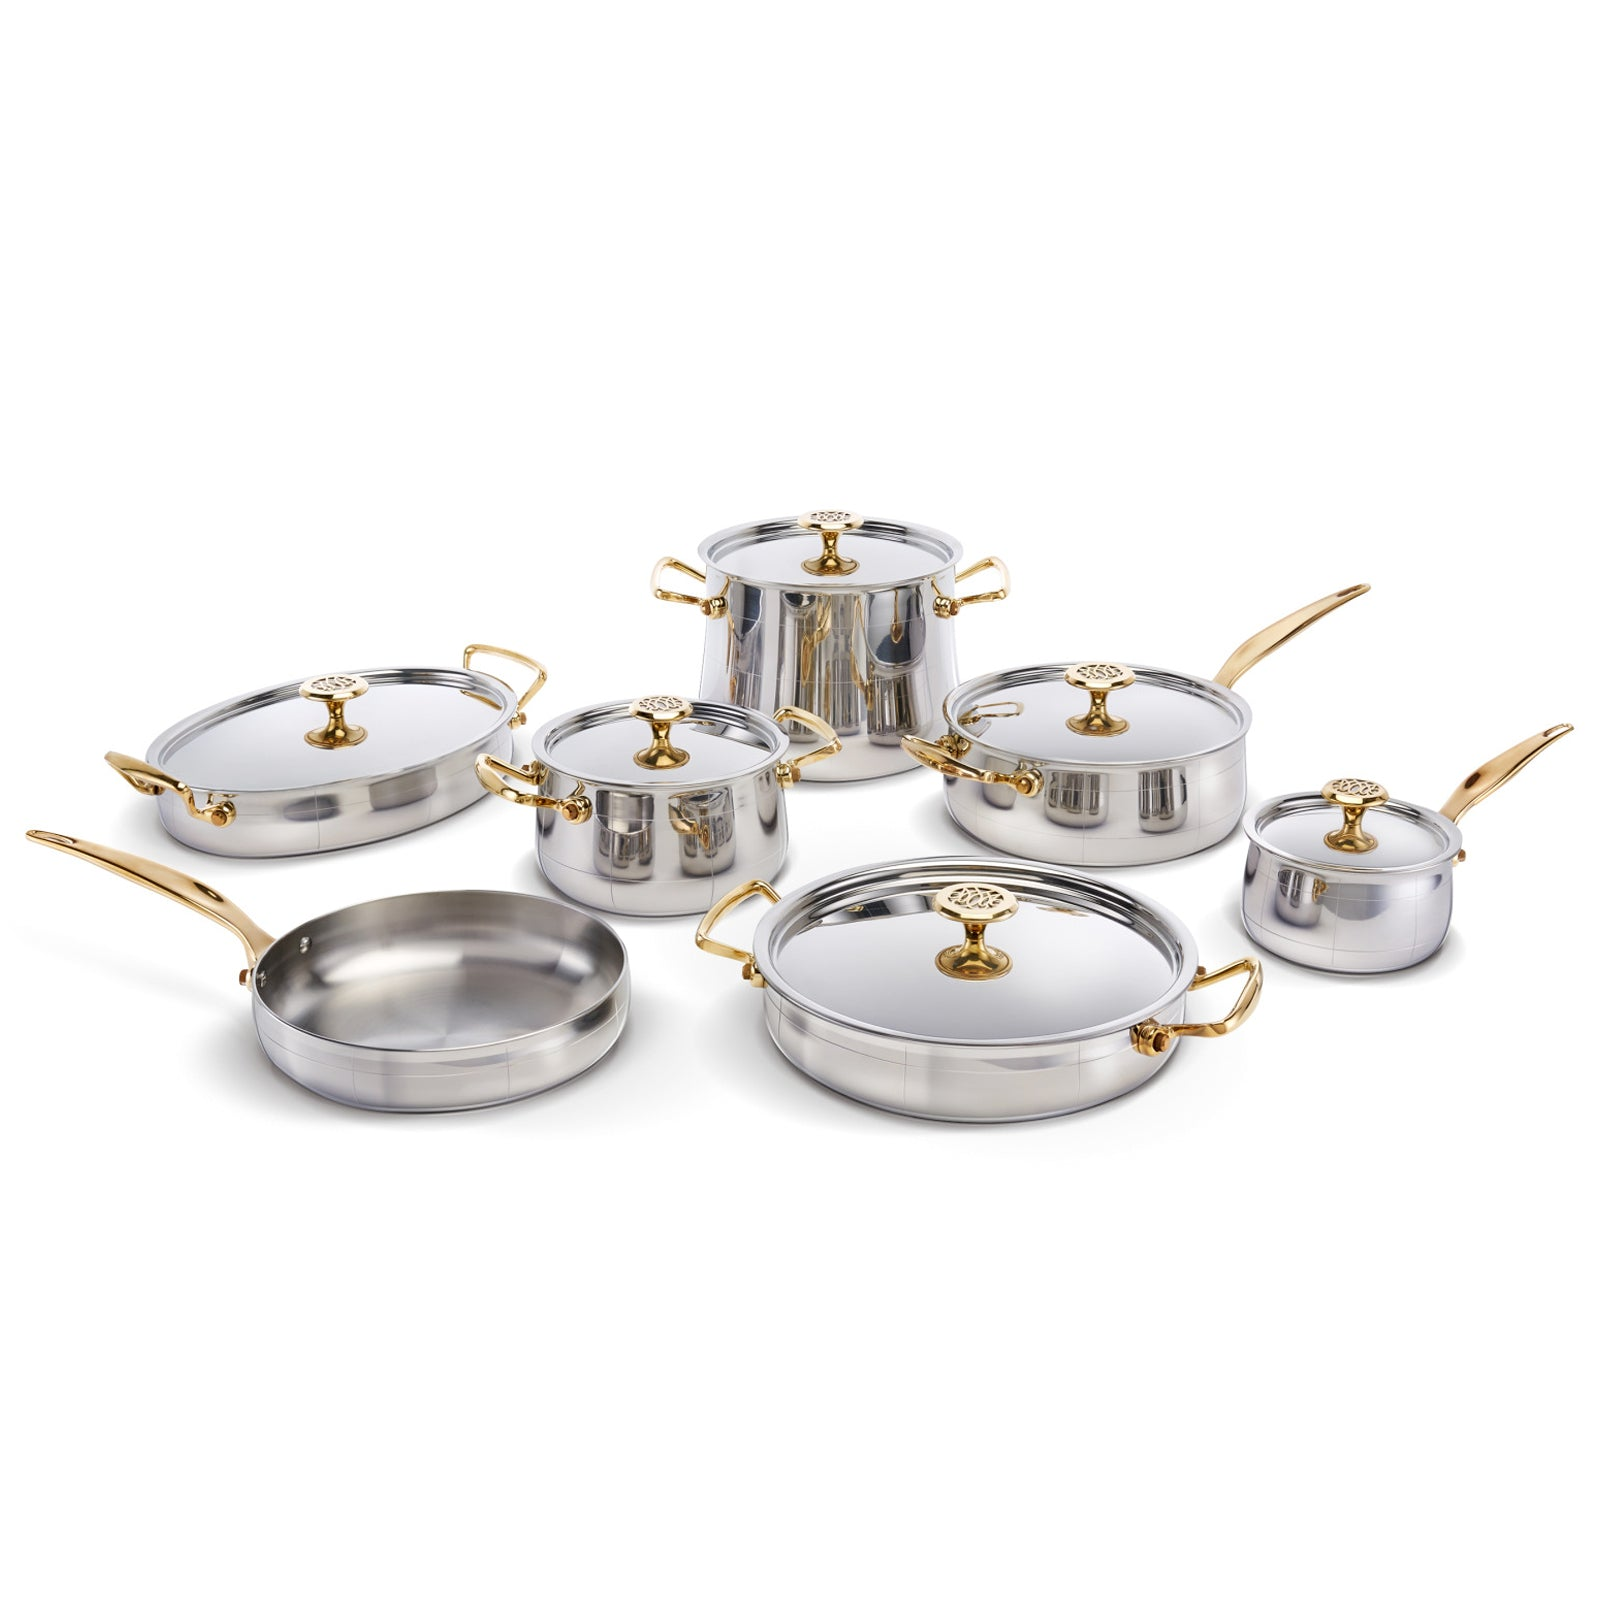 Platine Cookware Set by Ondine on LuxDeco.com